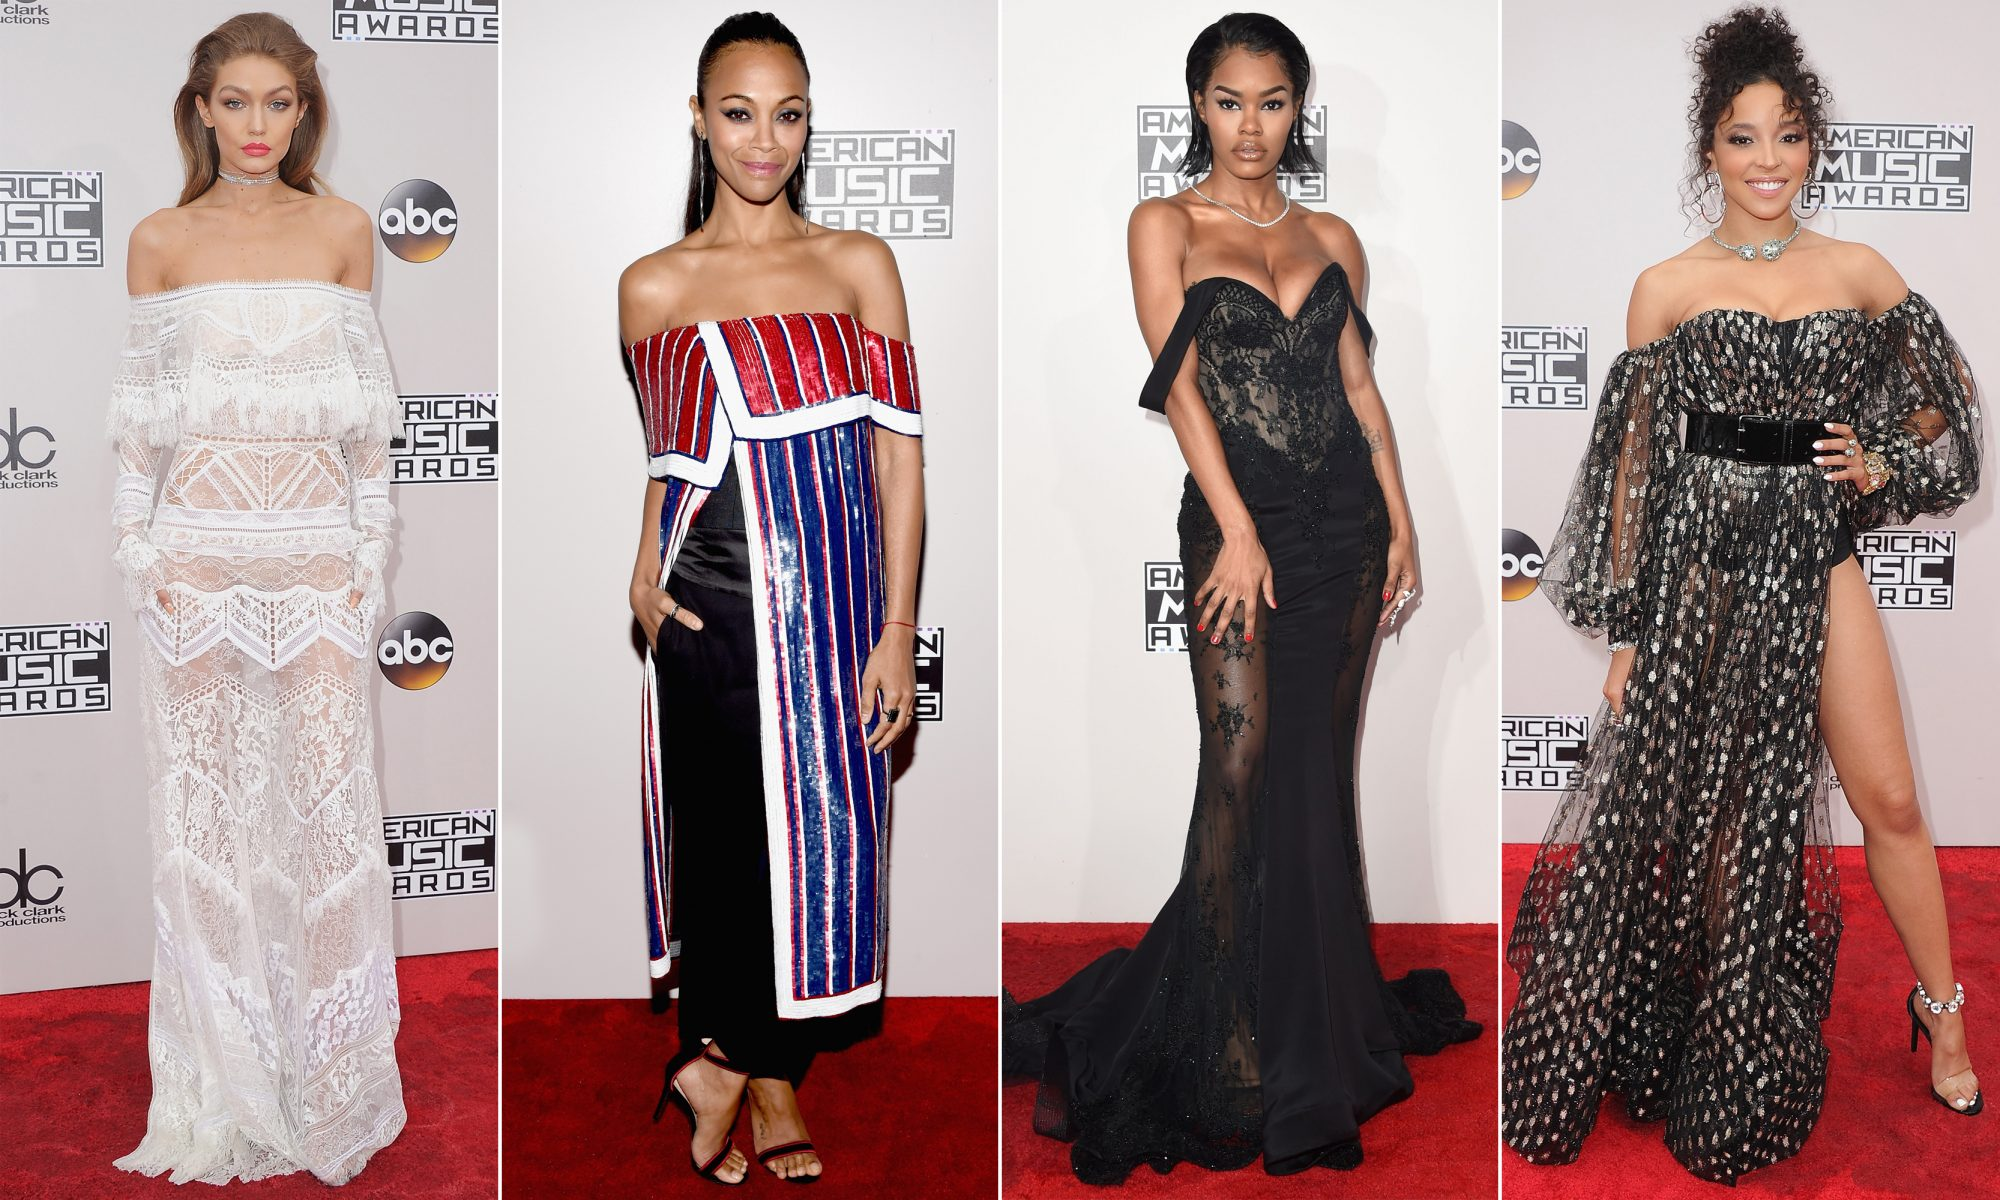 The 3 Biggest Fashion Trends from the 2016 American Music Awards